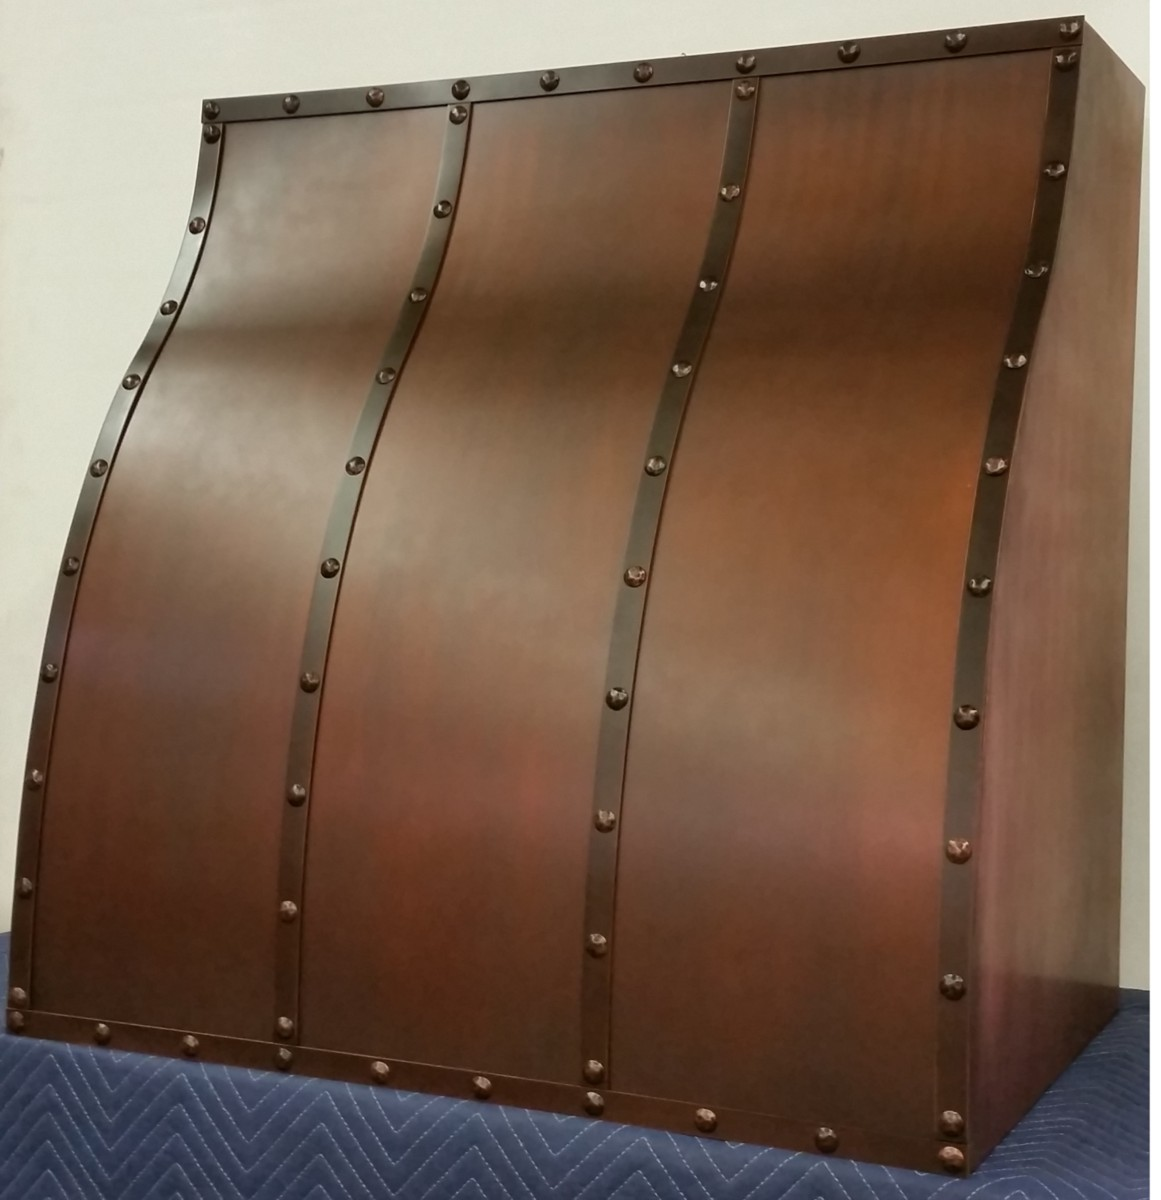 Copper range hood, New Castle design, made in USA